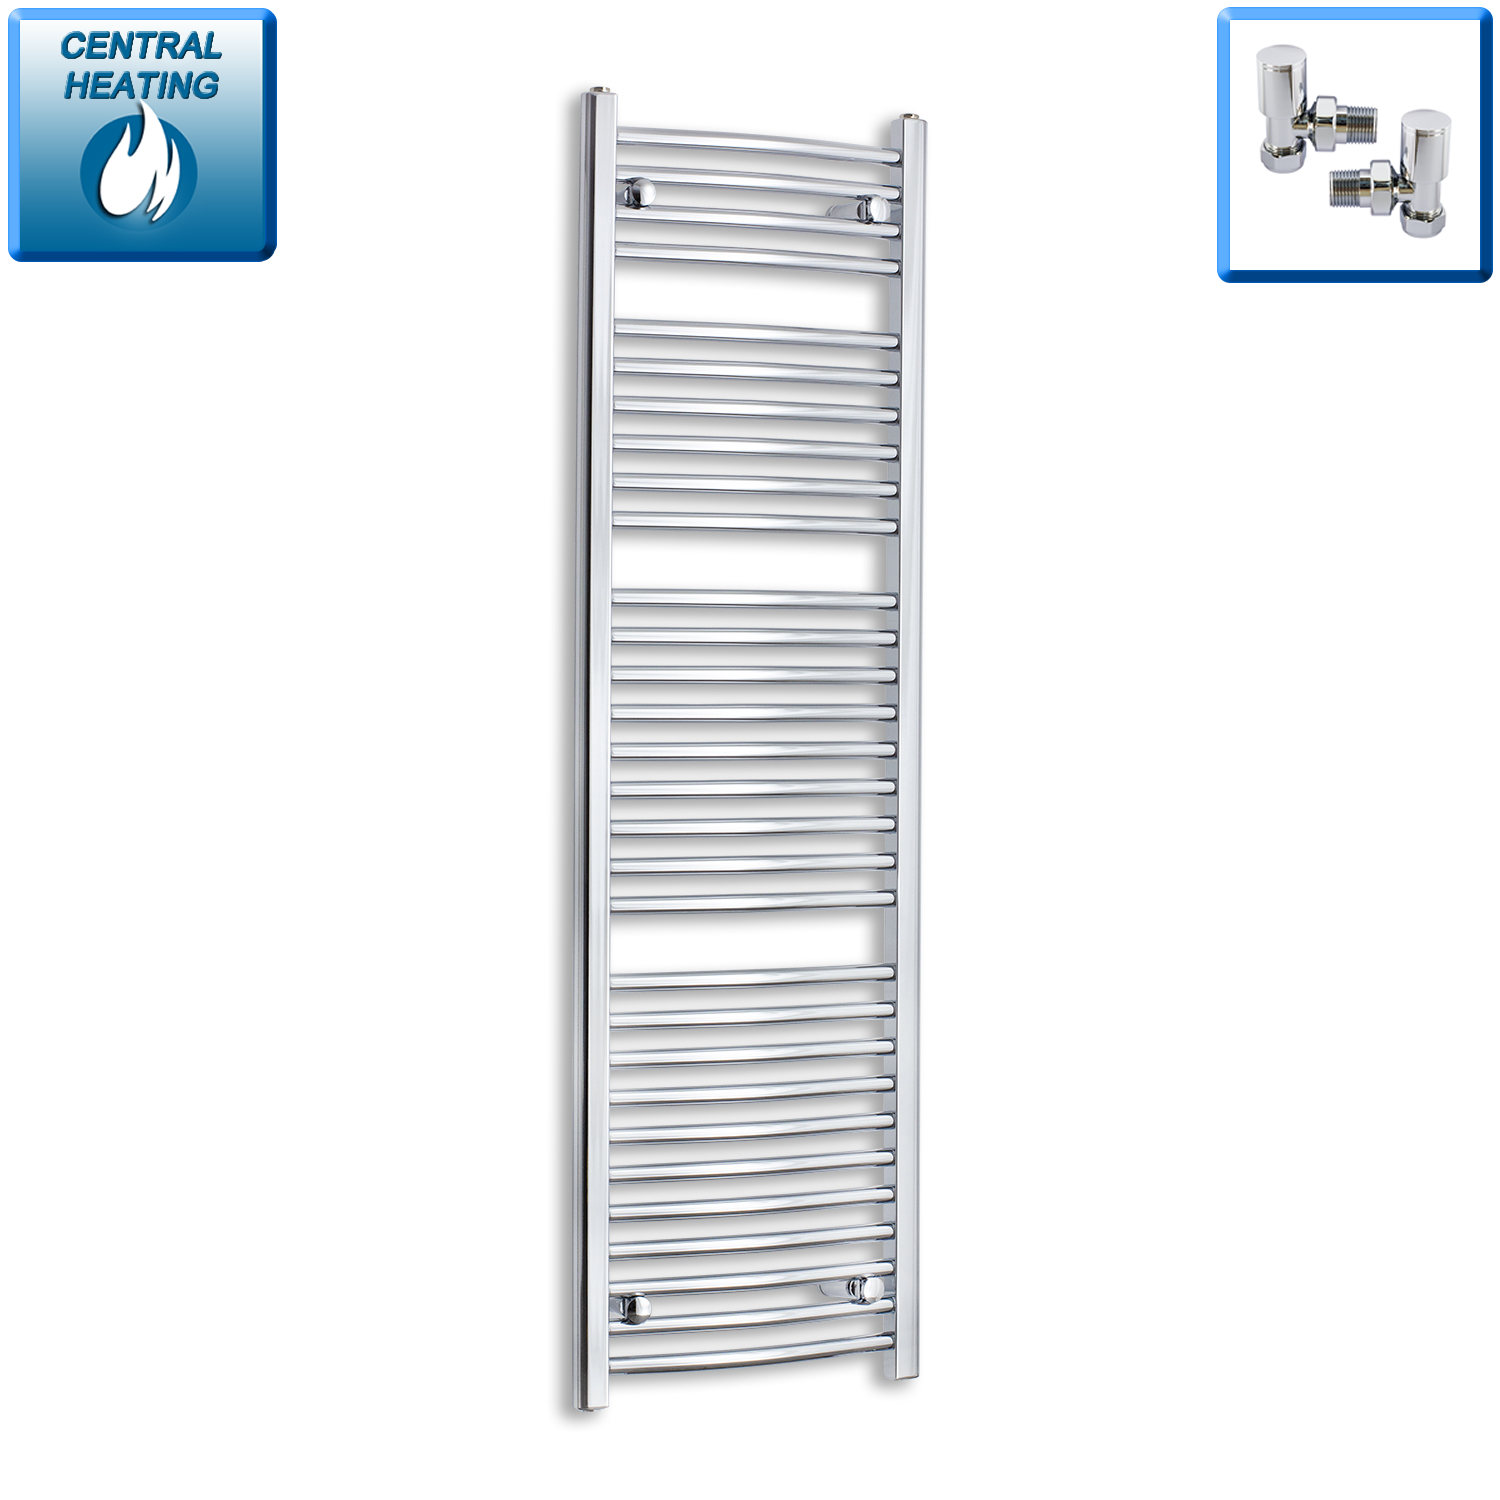 450mm Wide 1500mm High Chrome Towel Rail Radiator With Angled Valve